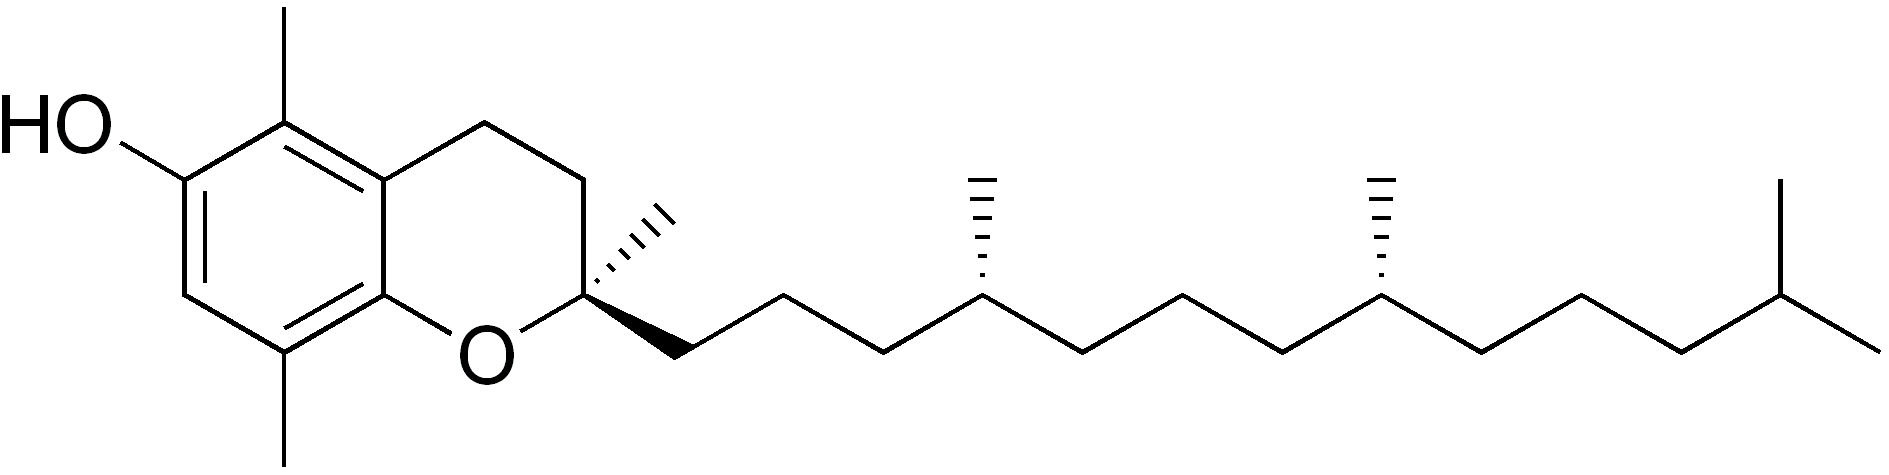 Beta-tocopherol